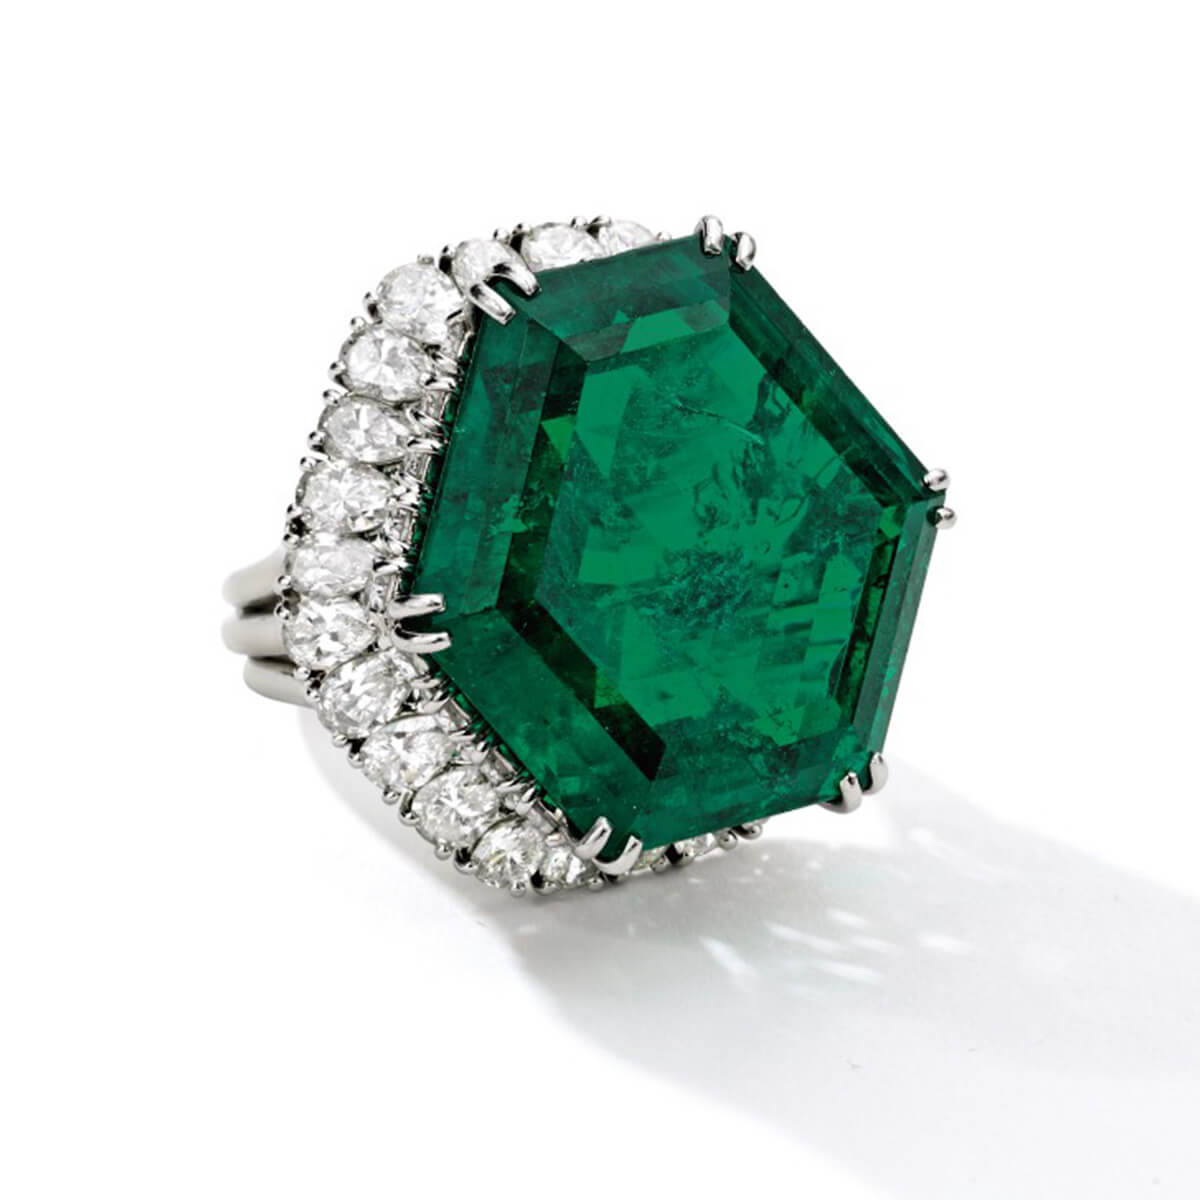 Image of The Stotesbury ring featuring a hexagonal-shaped Colombian emerald center stone weighing a total of 34.40 carats